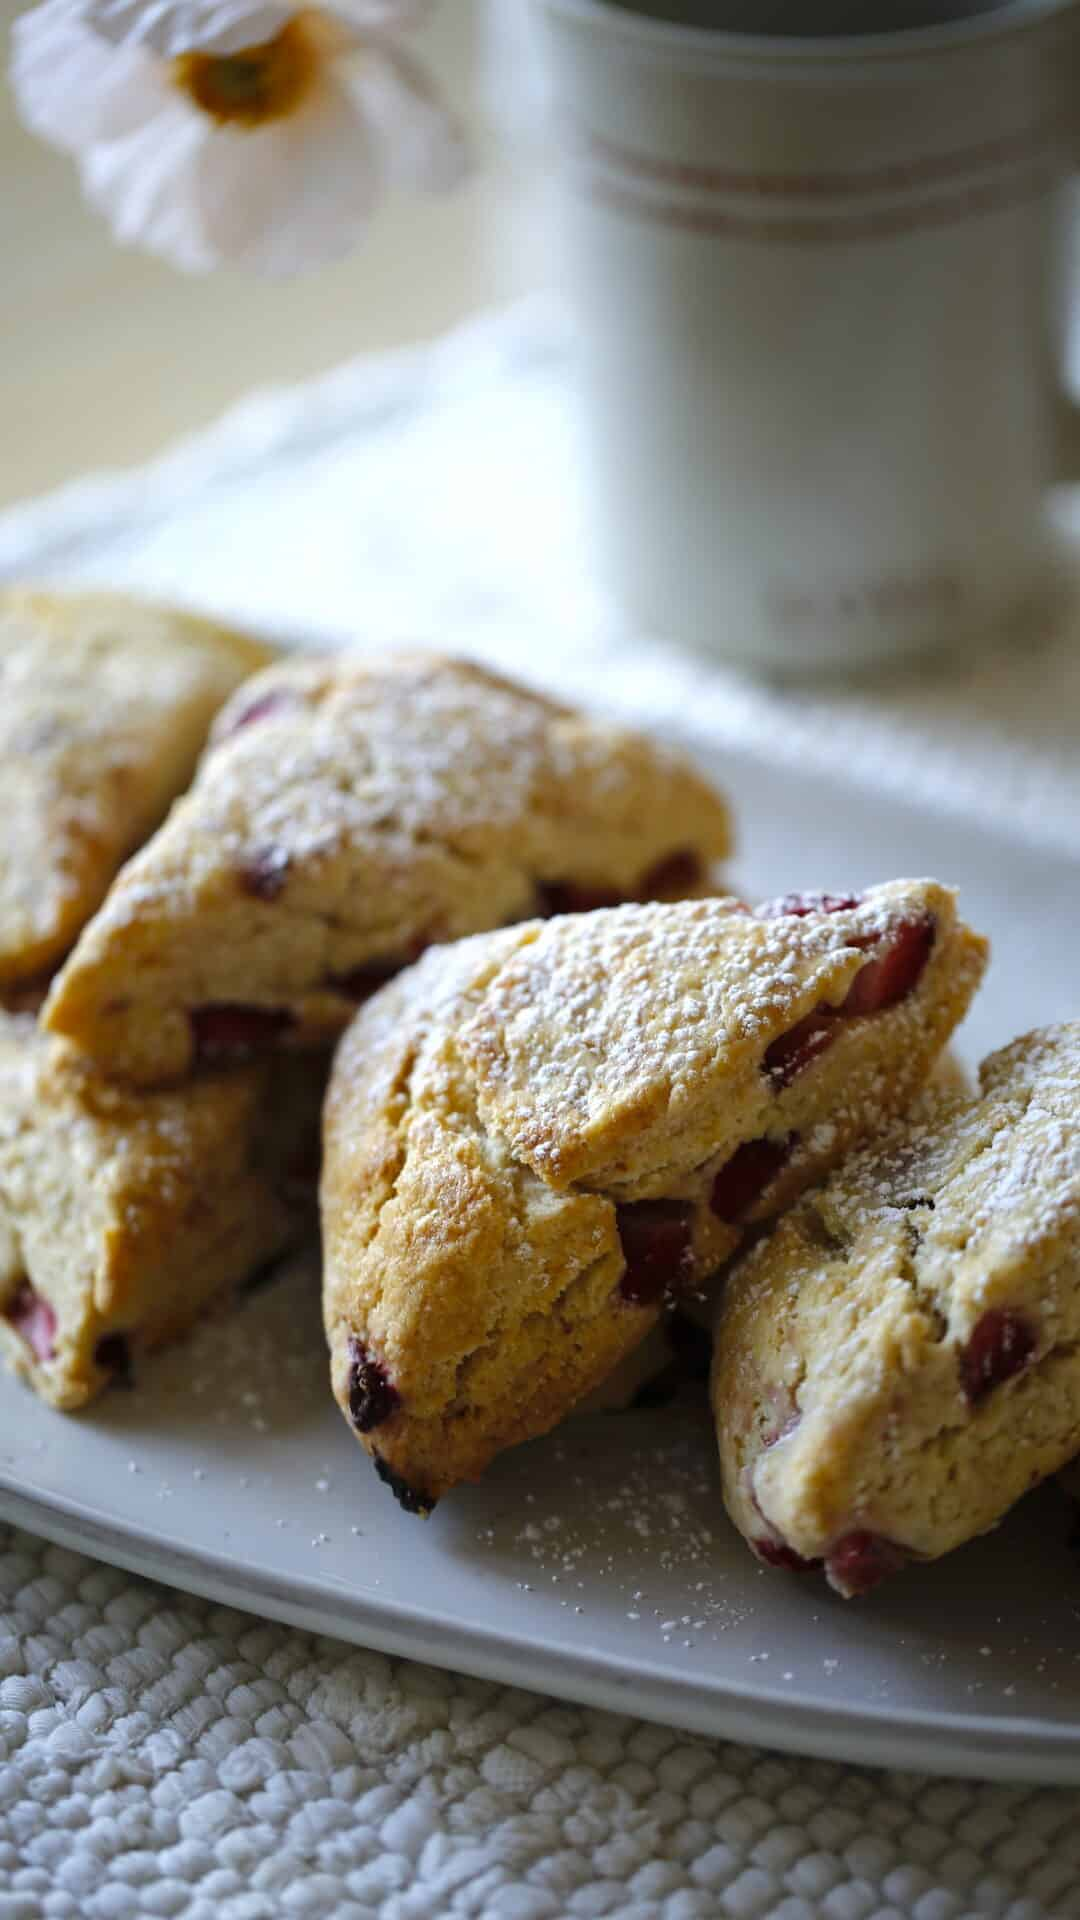 Strawberry Scones on a platter with a coffee mug in the background